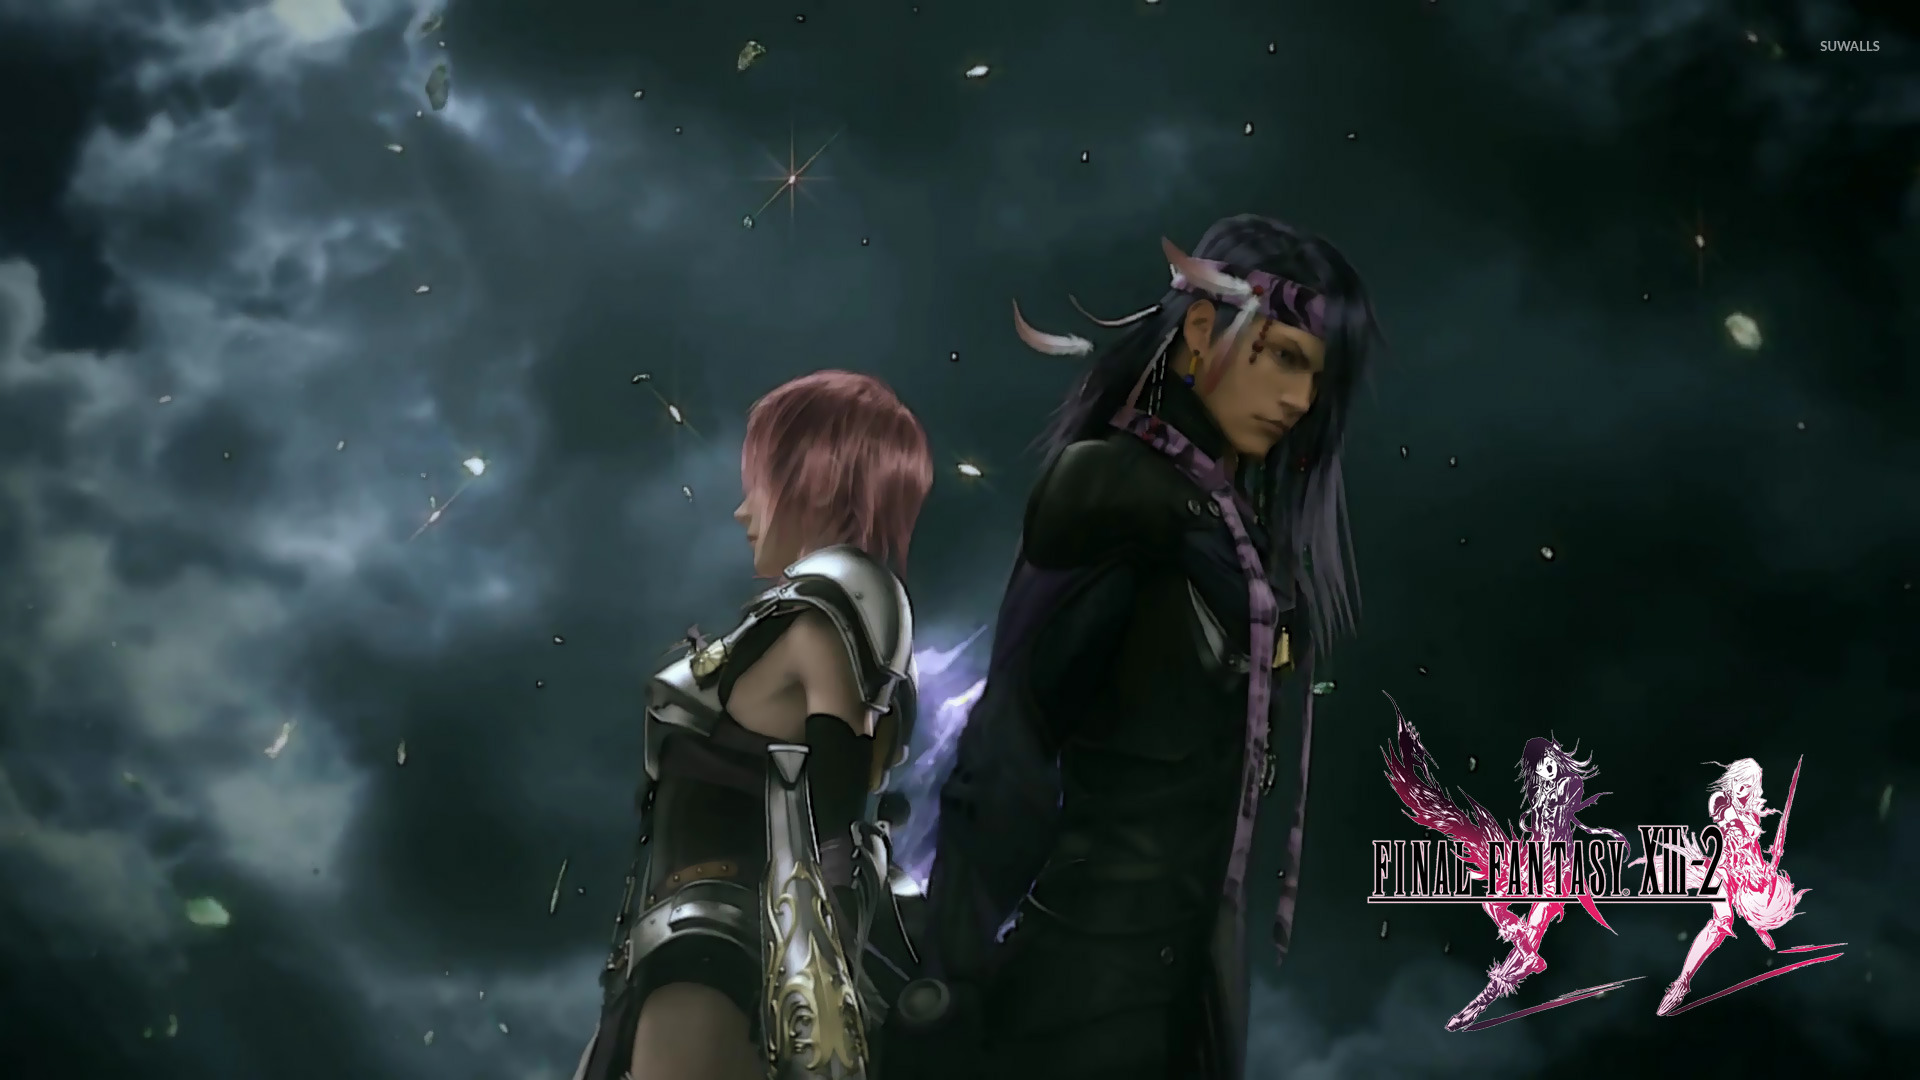 Lightning And Caius Final Fantasy Xiii 2 3 Wallpaper Game